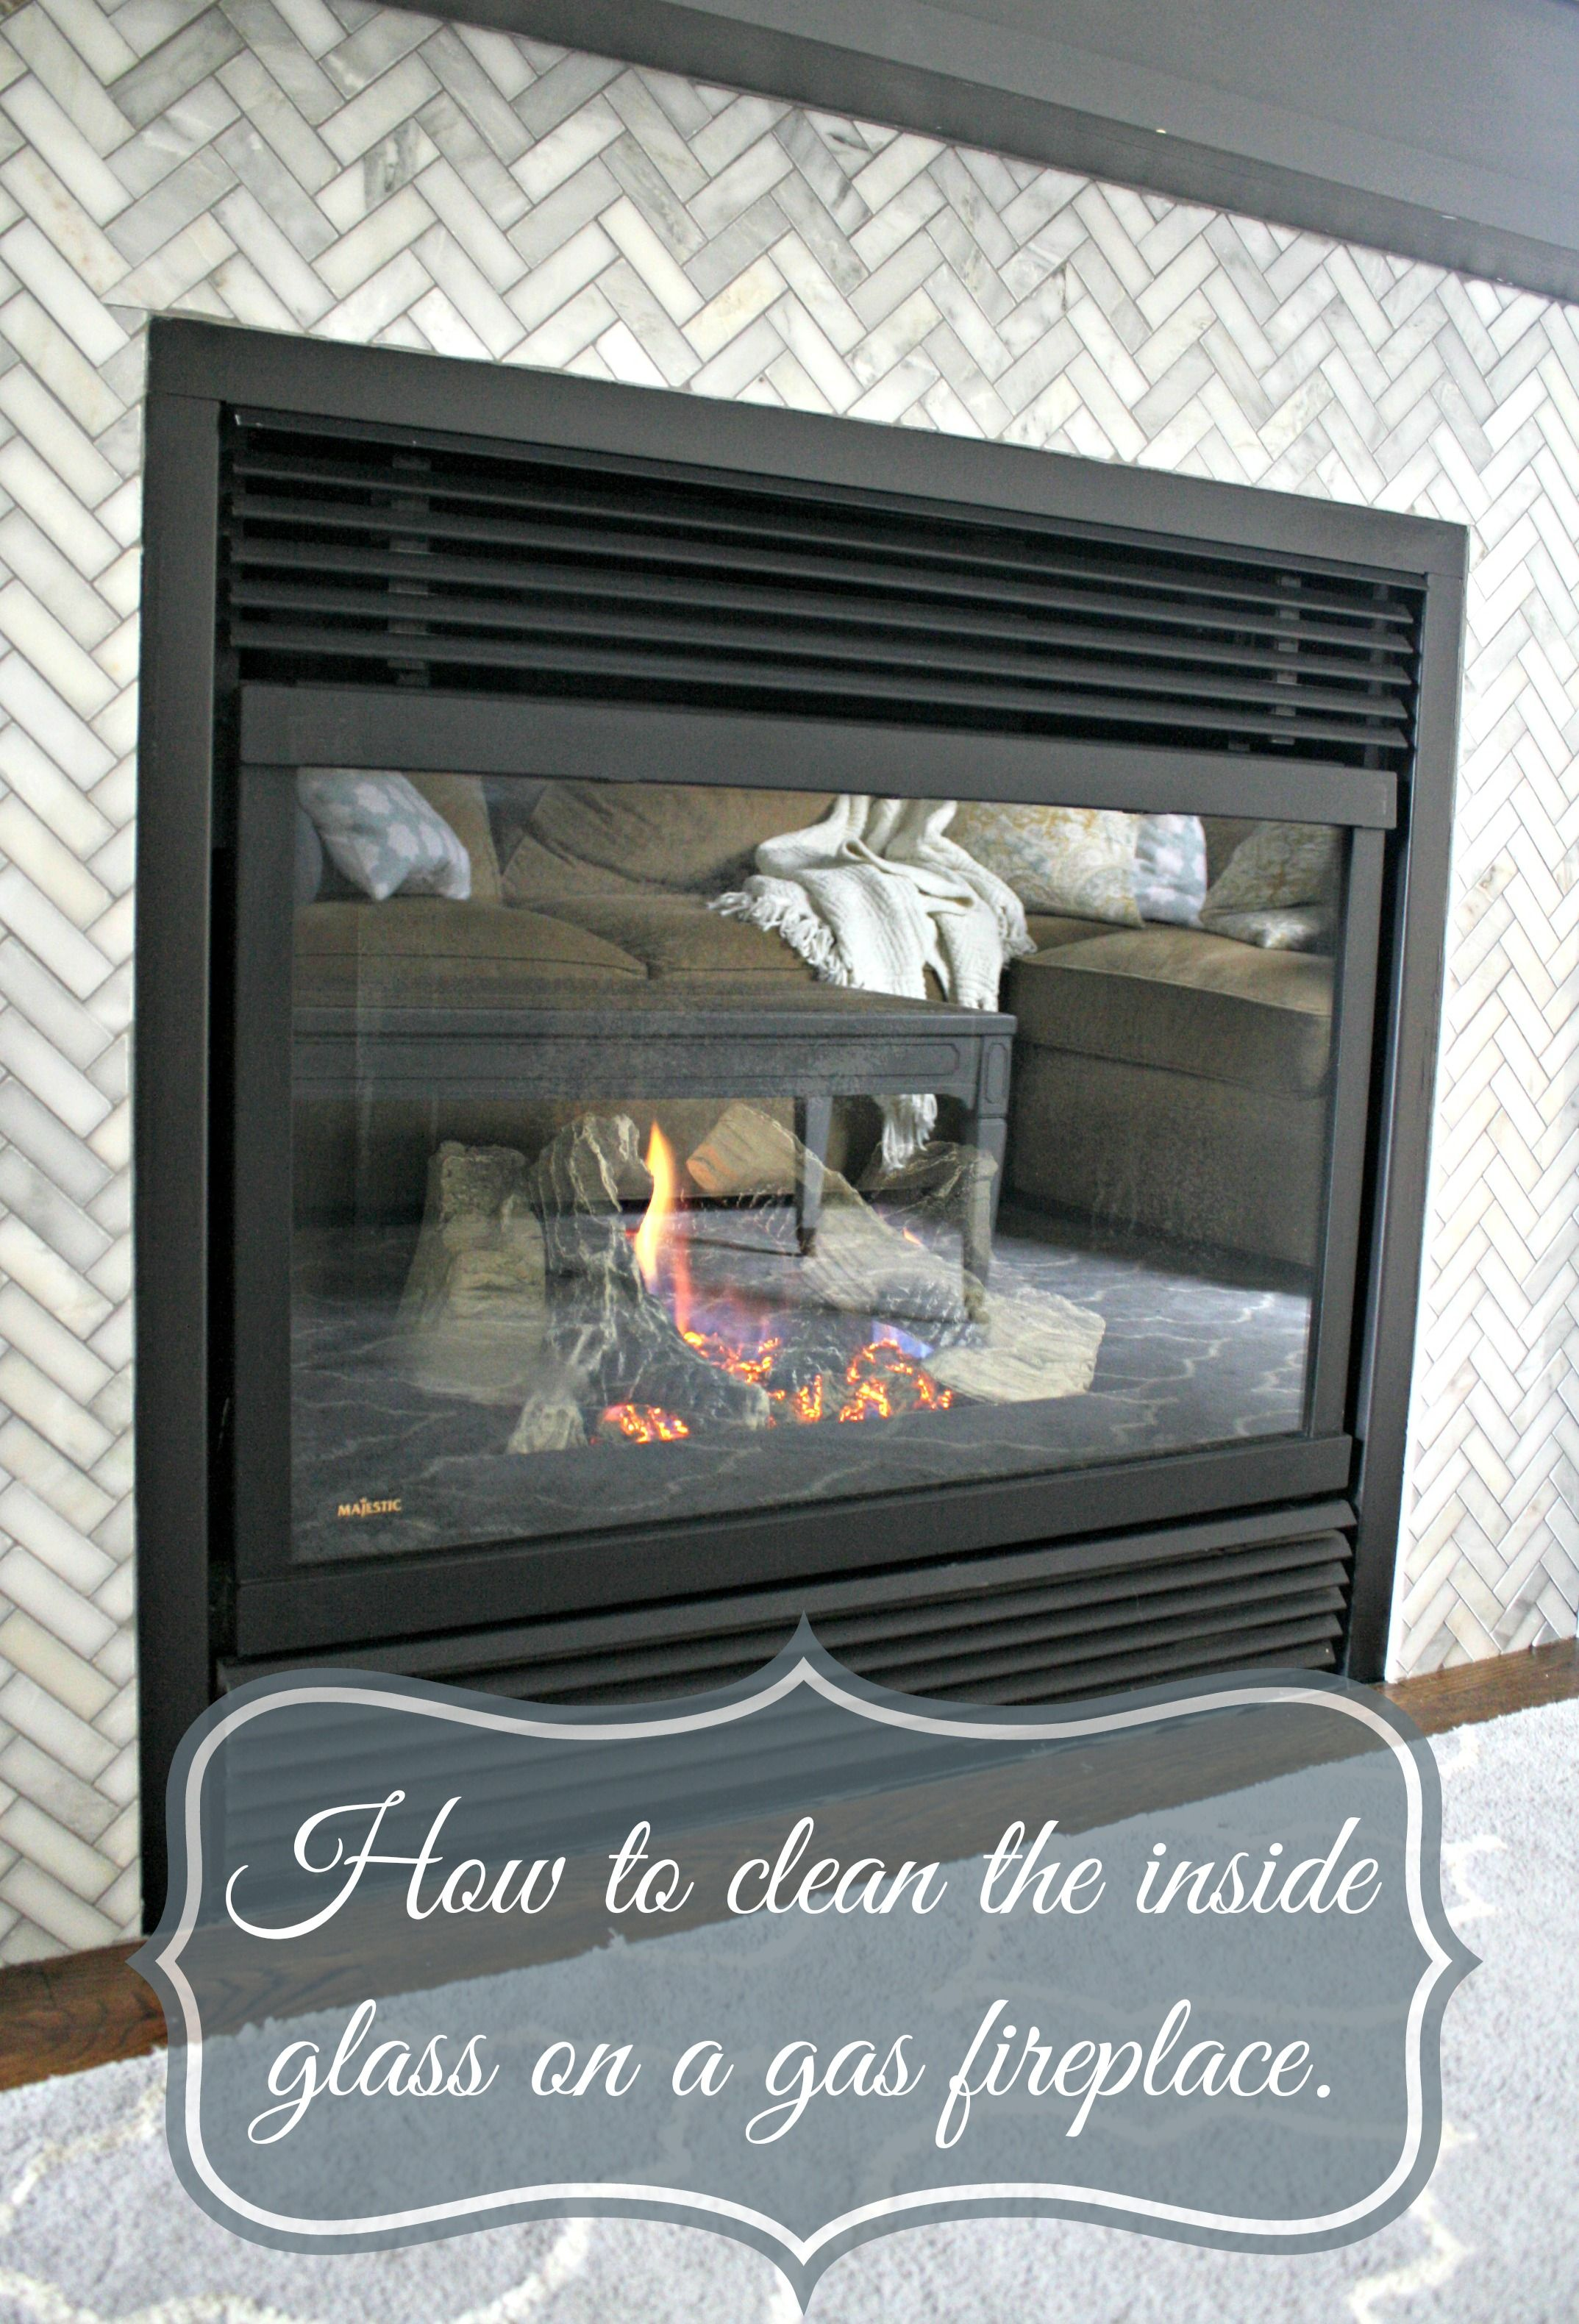 Cleaning Gas Fireplace Glass Glass Fireplace Clean Fireplace Glass Gas Fireplace